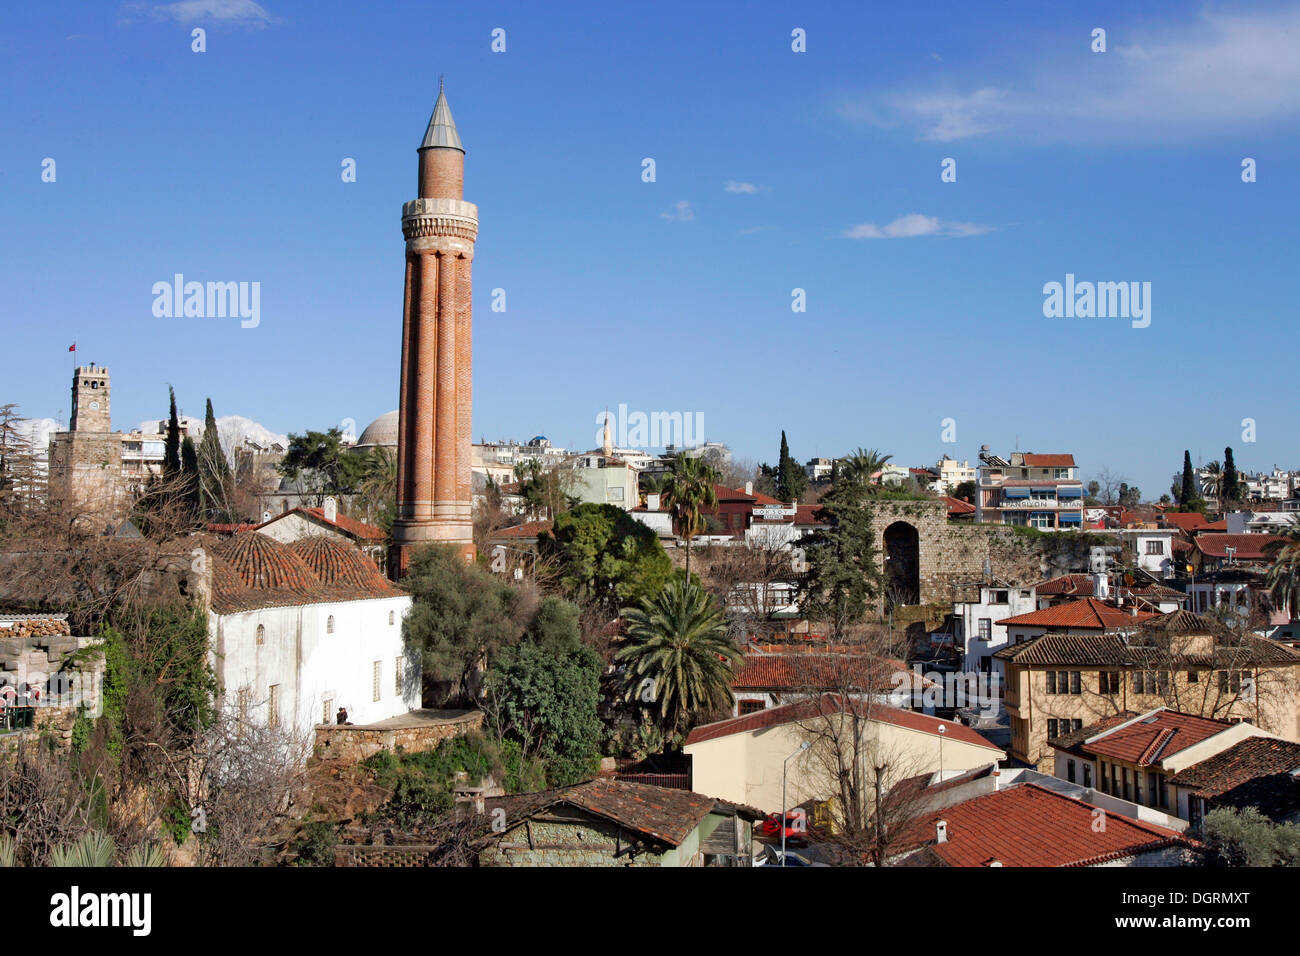 Yivli Minare Mosque, also known as Antalya Ulu Camii, Saat ...